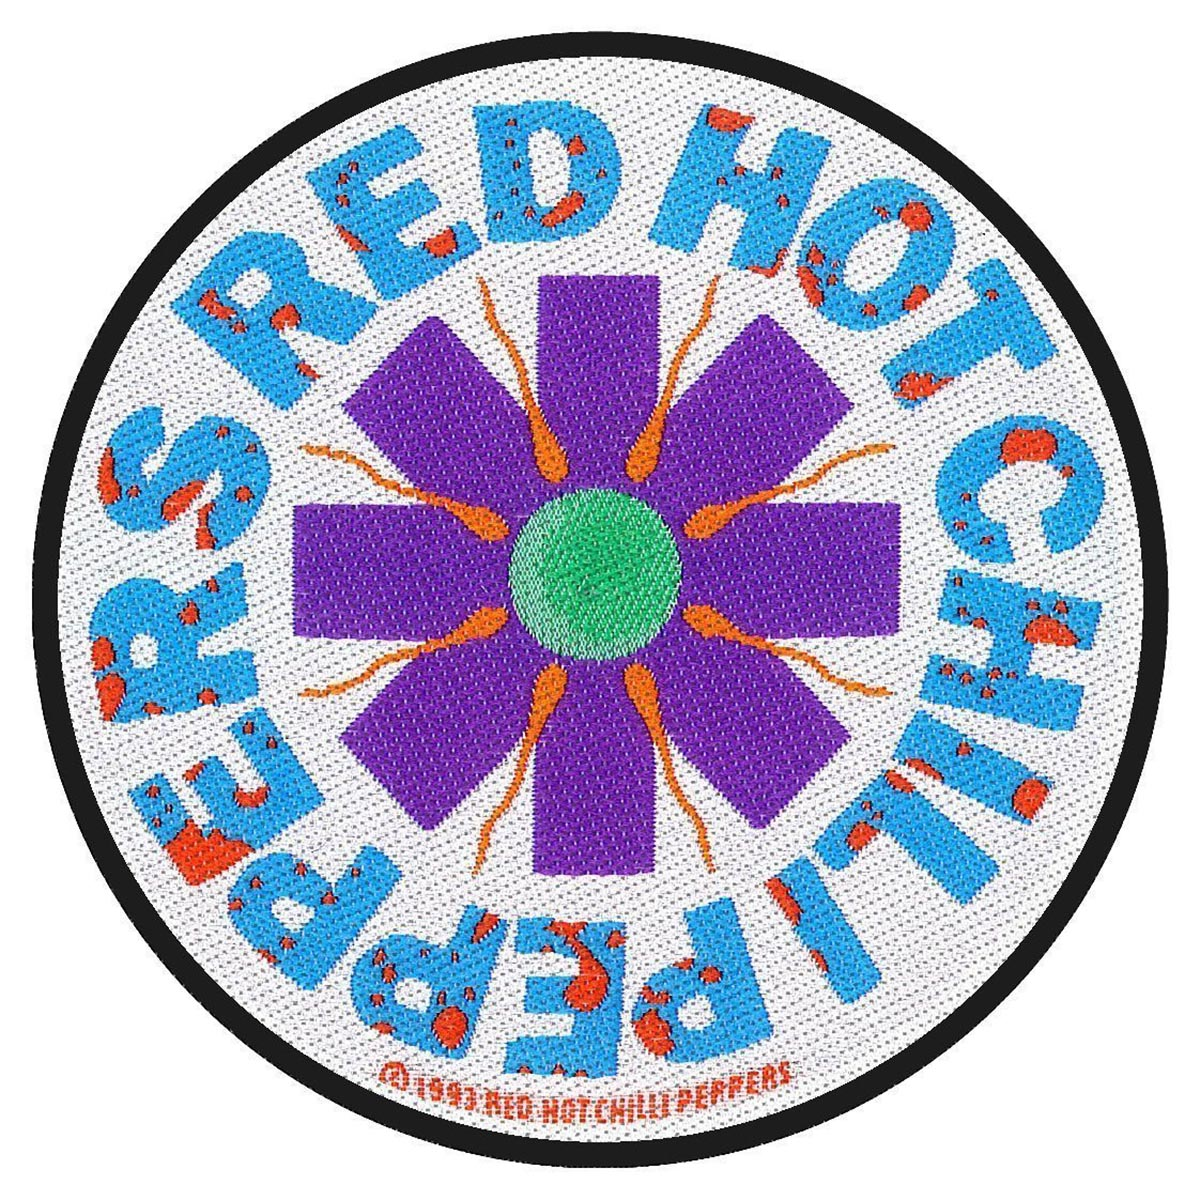 Sperm – Woven Patch - Red Hot Chili Peppers